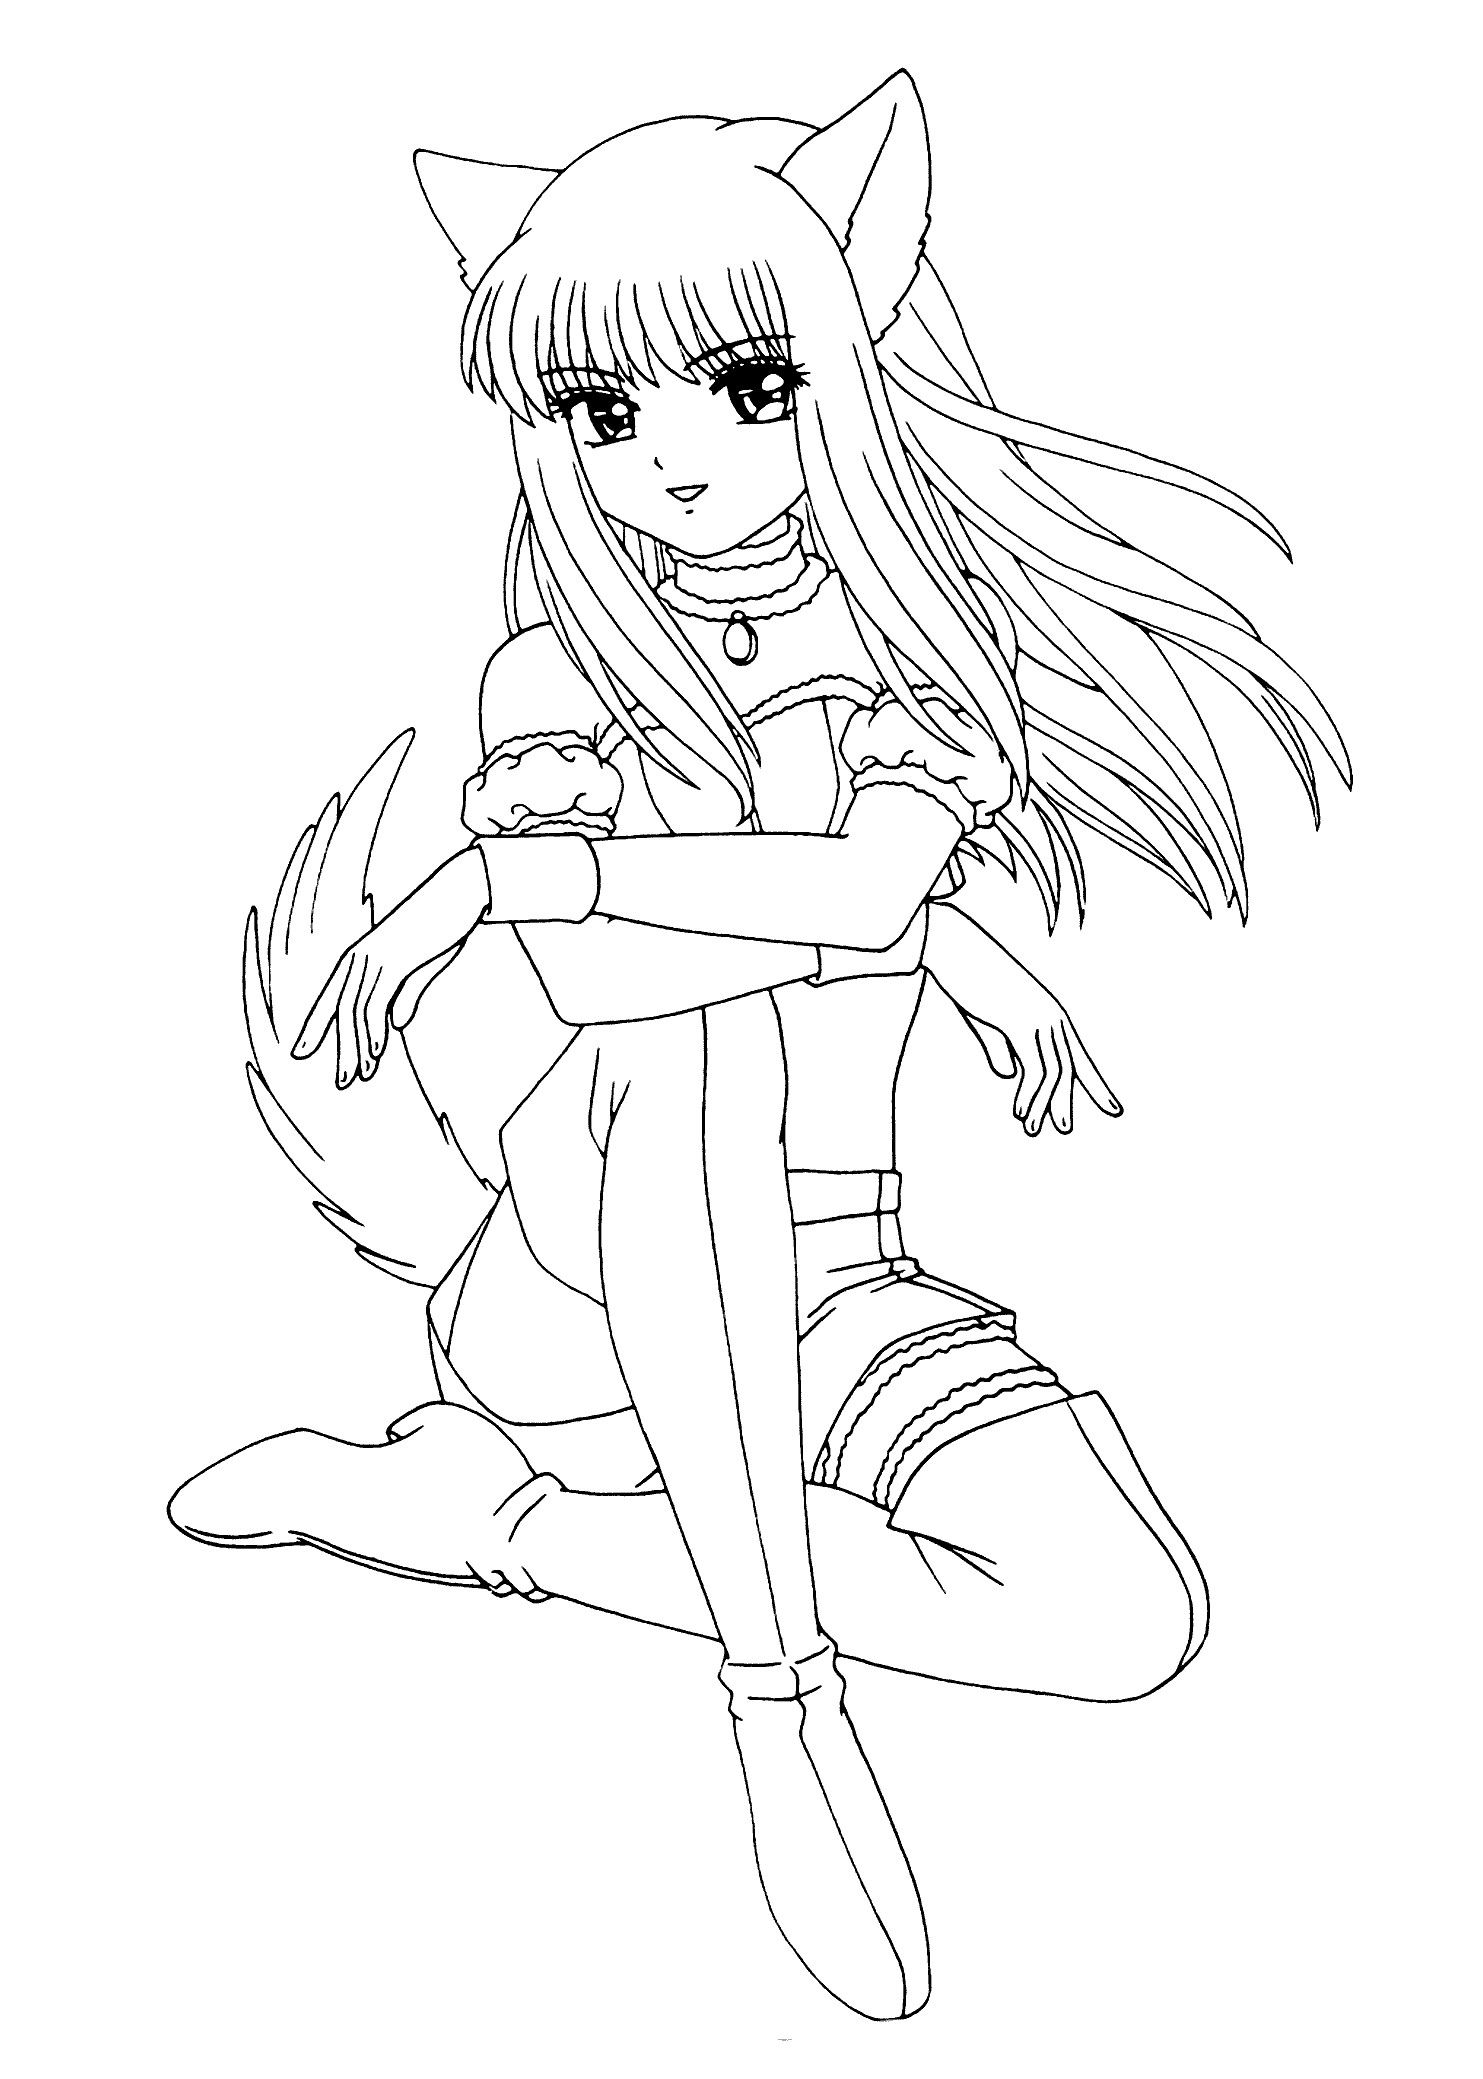 Anime Cat Girl Coloring Page Anime Cat Coloring Pages Of Anime Cat Girl Coloring Page In 2020 Anime Wolf Girl Princess Coloring Pages Disney Princess Coloring Pages